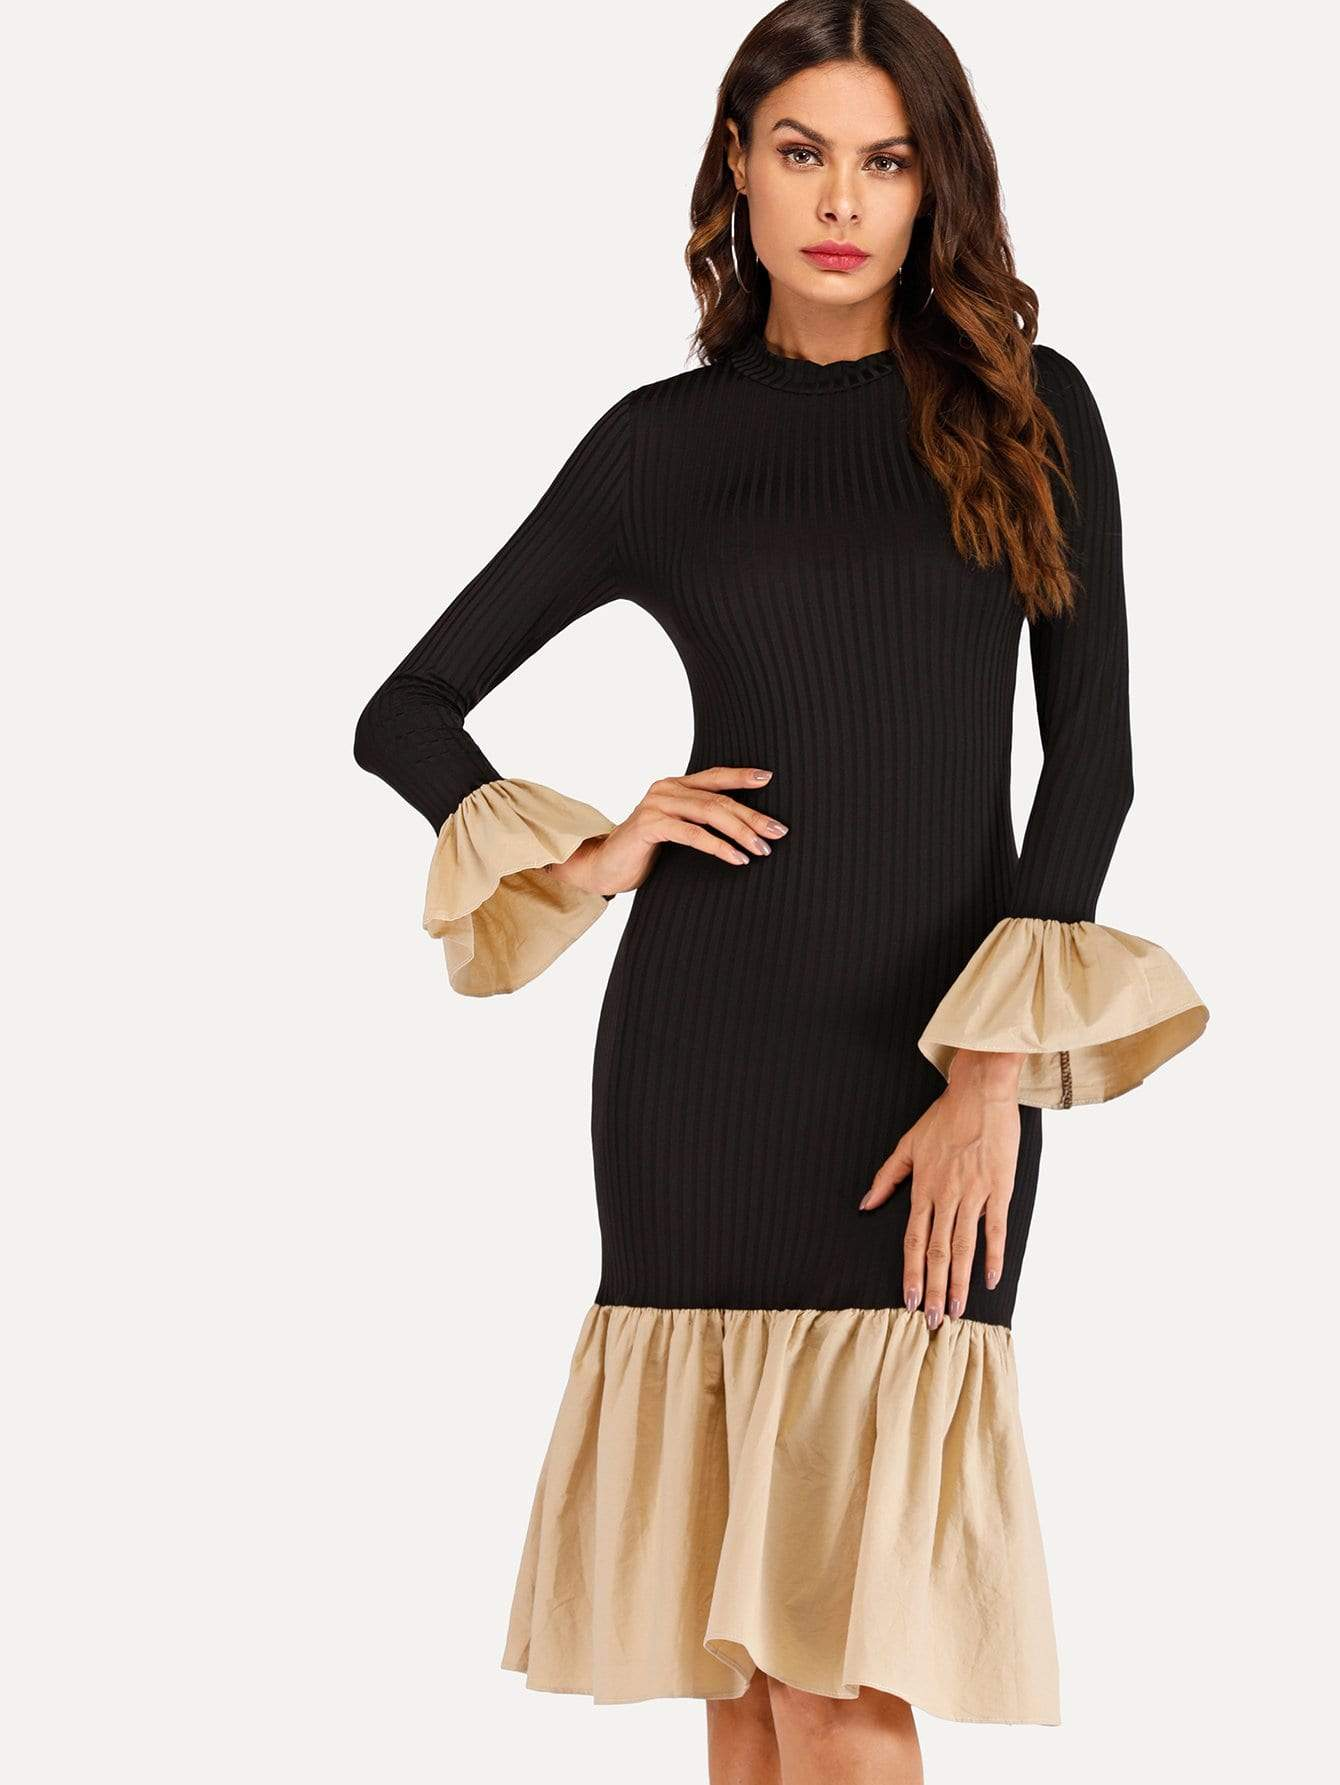 Contrast Ruffle Knit Dress - LoveSylvester